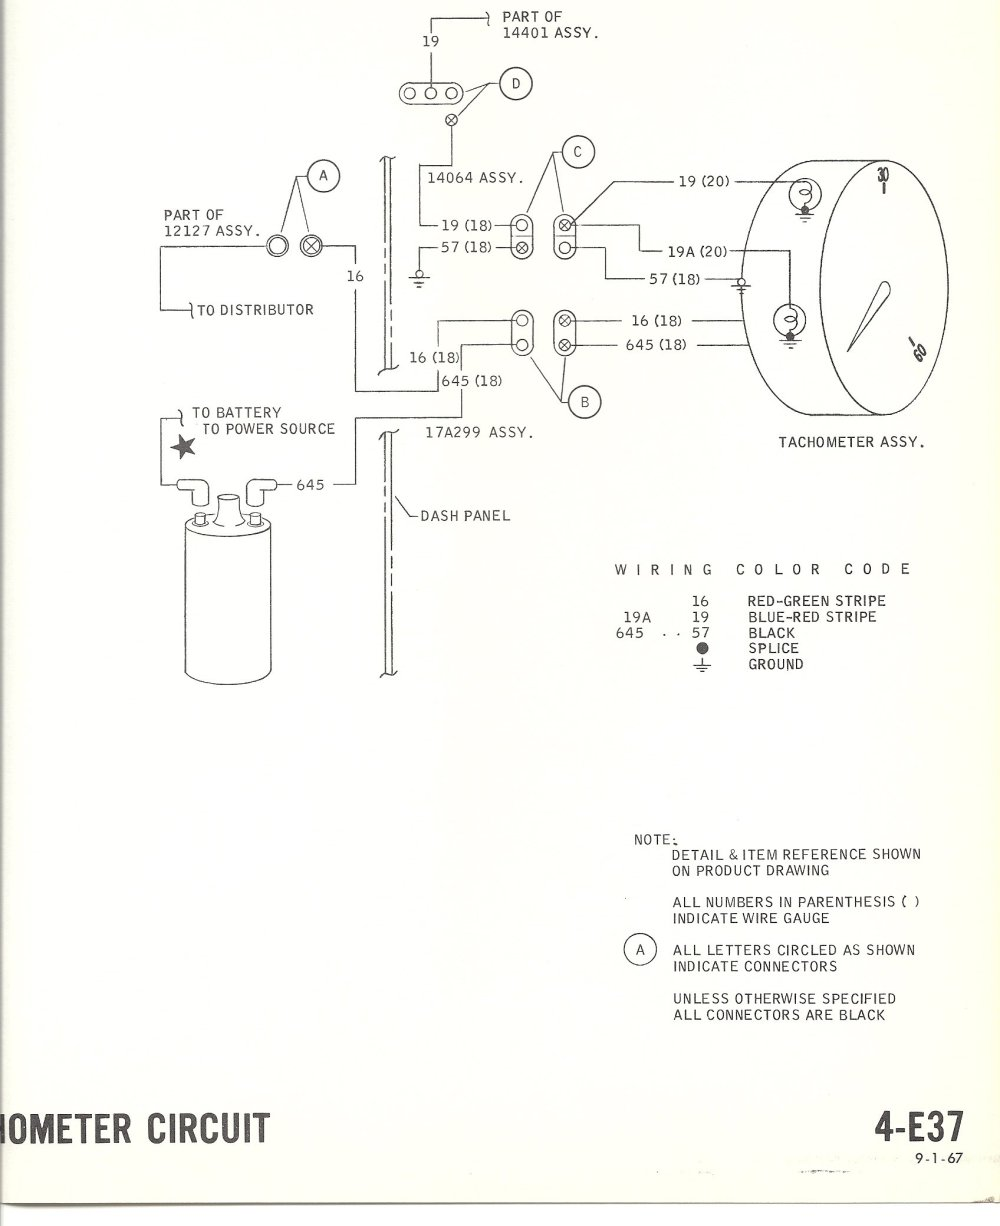 medium resolution of 1980 mustang tach wiring diagram wiring diagrams 1975 mustang tachometer wiring